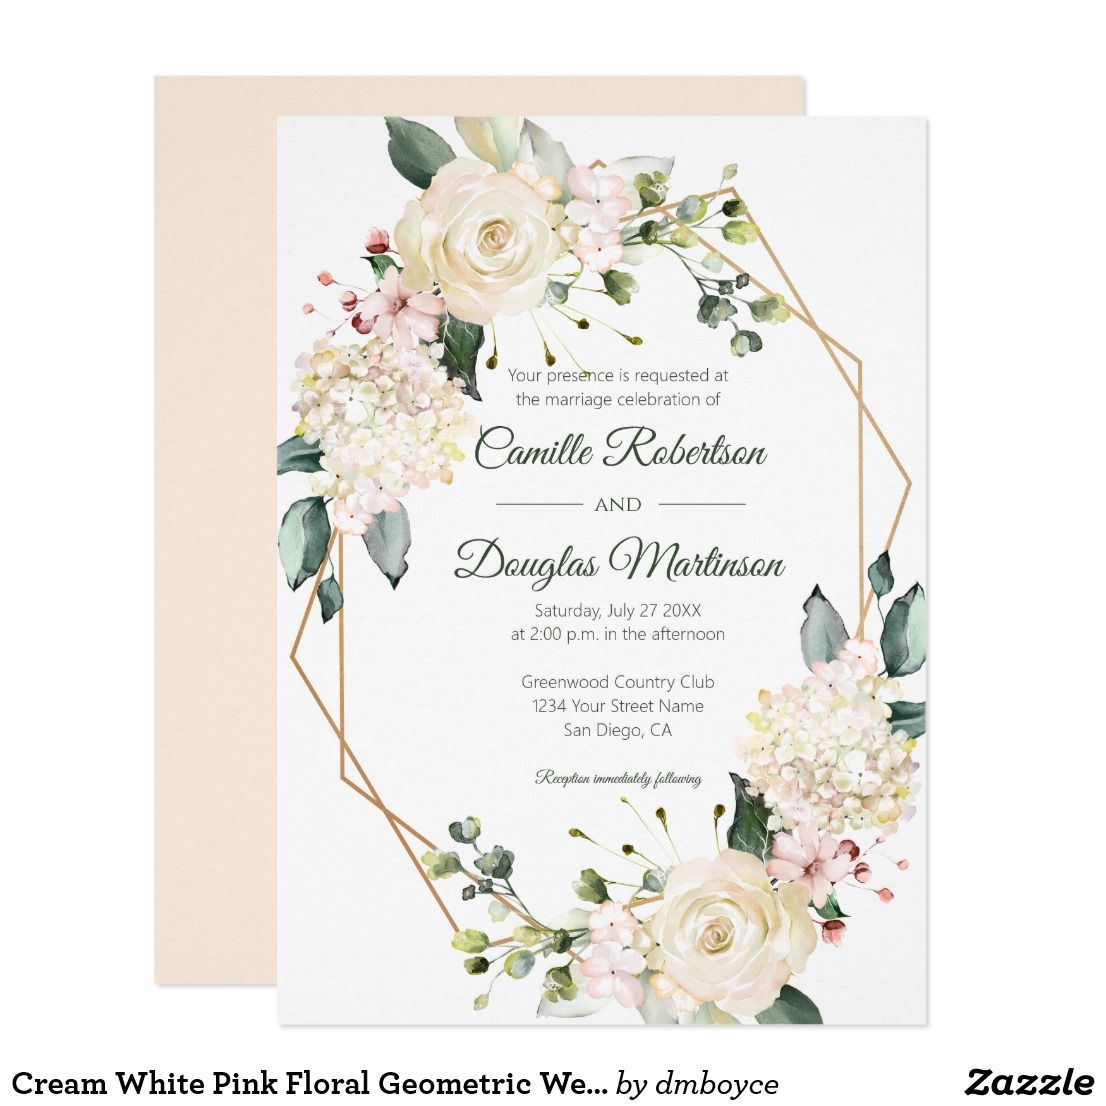 Cream White Pink Floral Geometric Wedding Invitation Zazzle